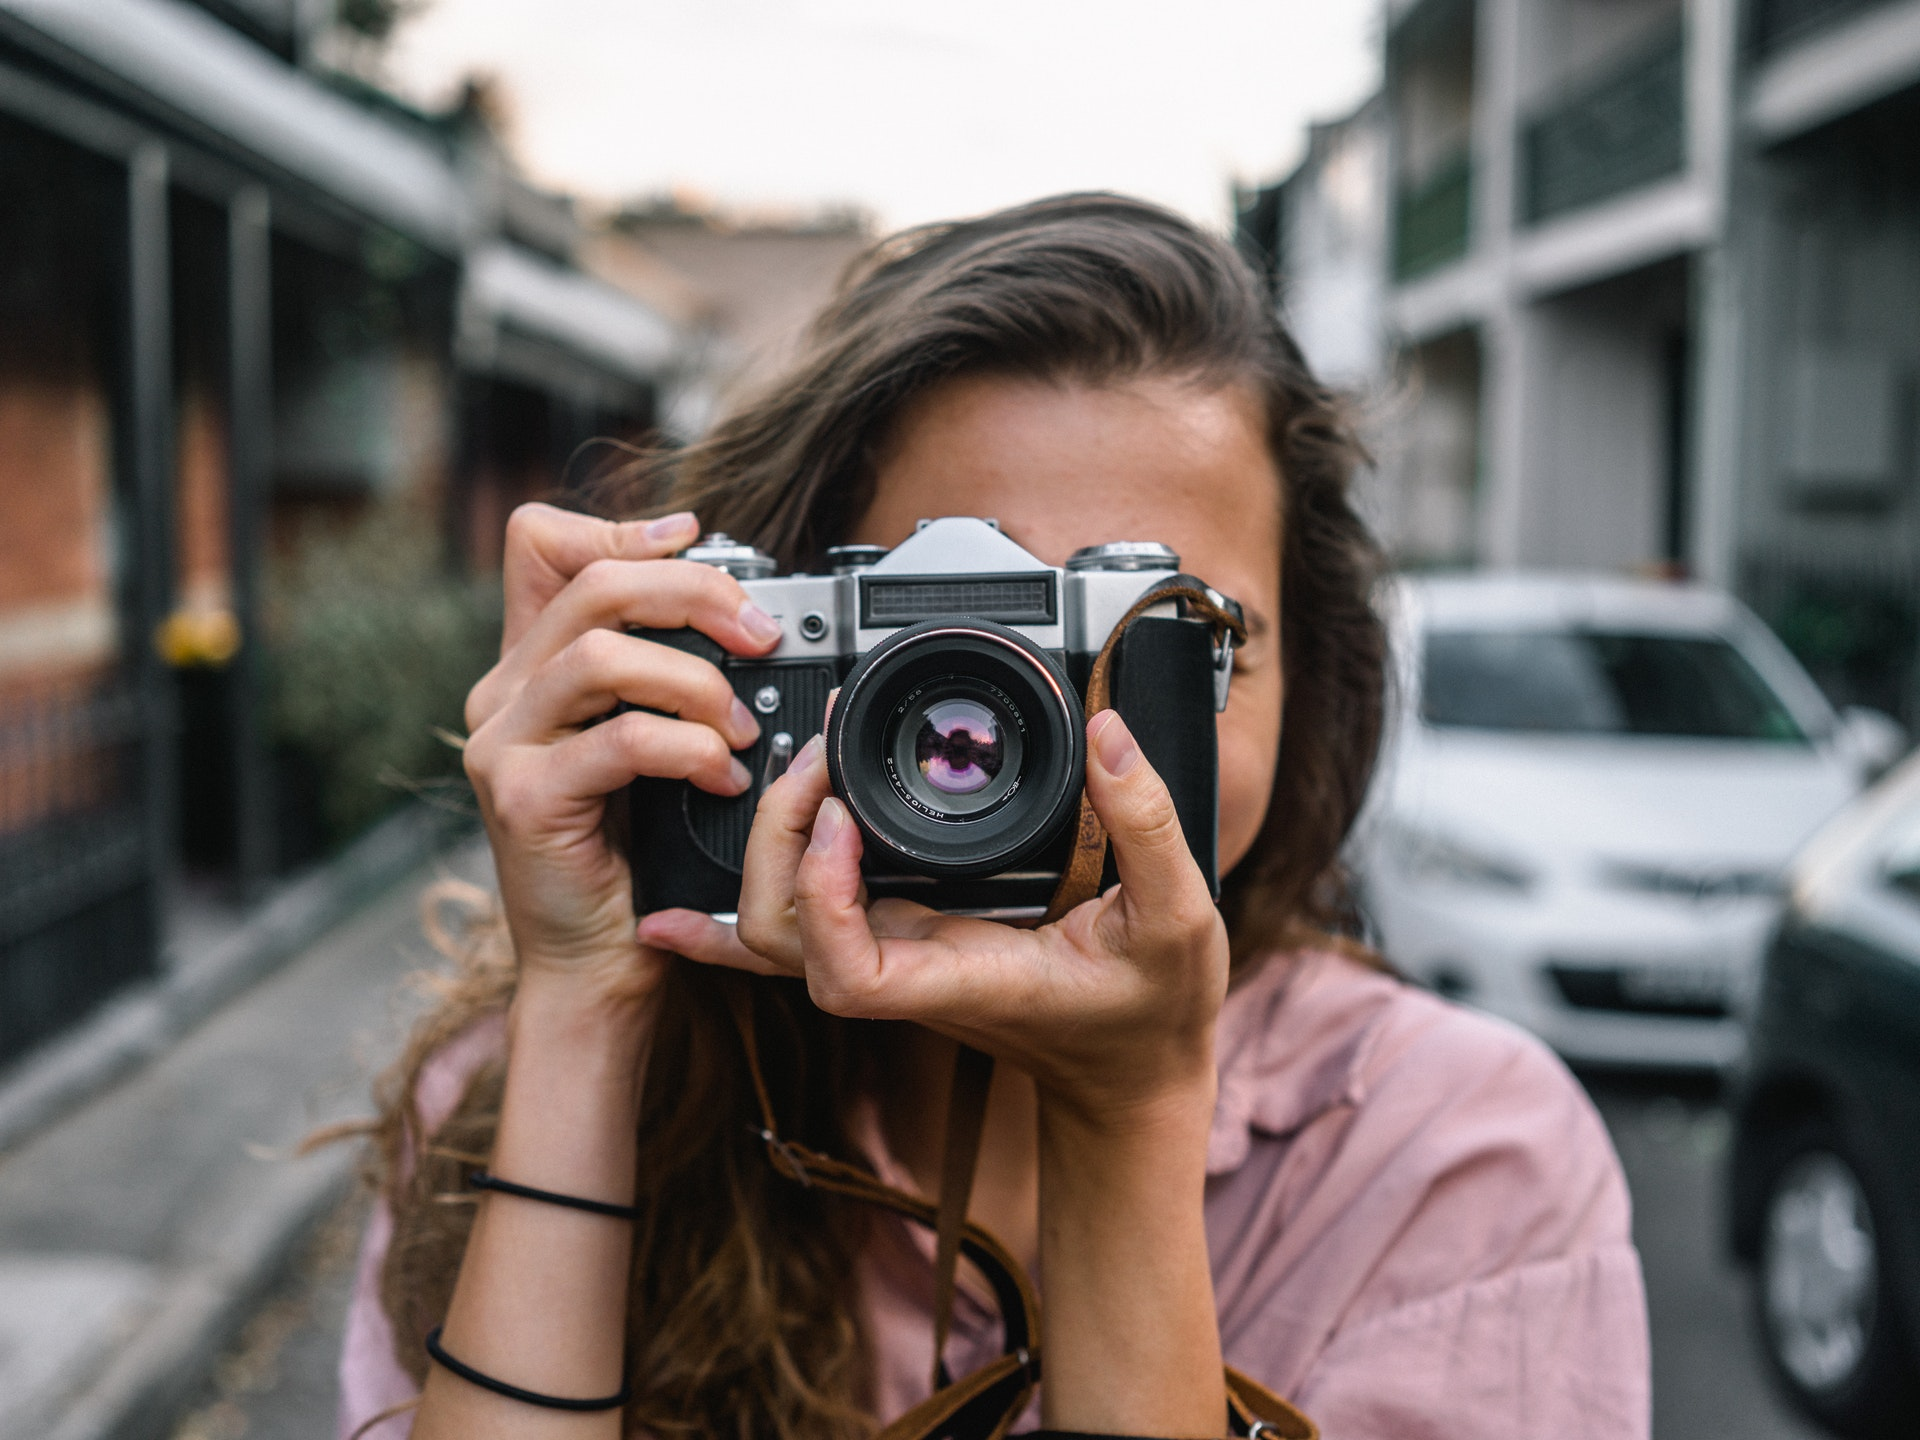 person holds mirrorless camera pointed at viewer, urban background, what is a mirrorless camera?